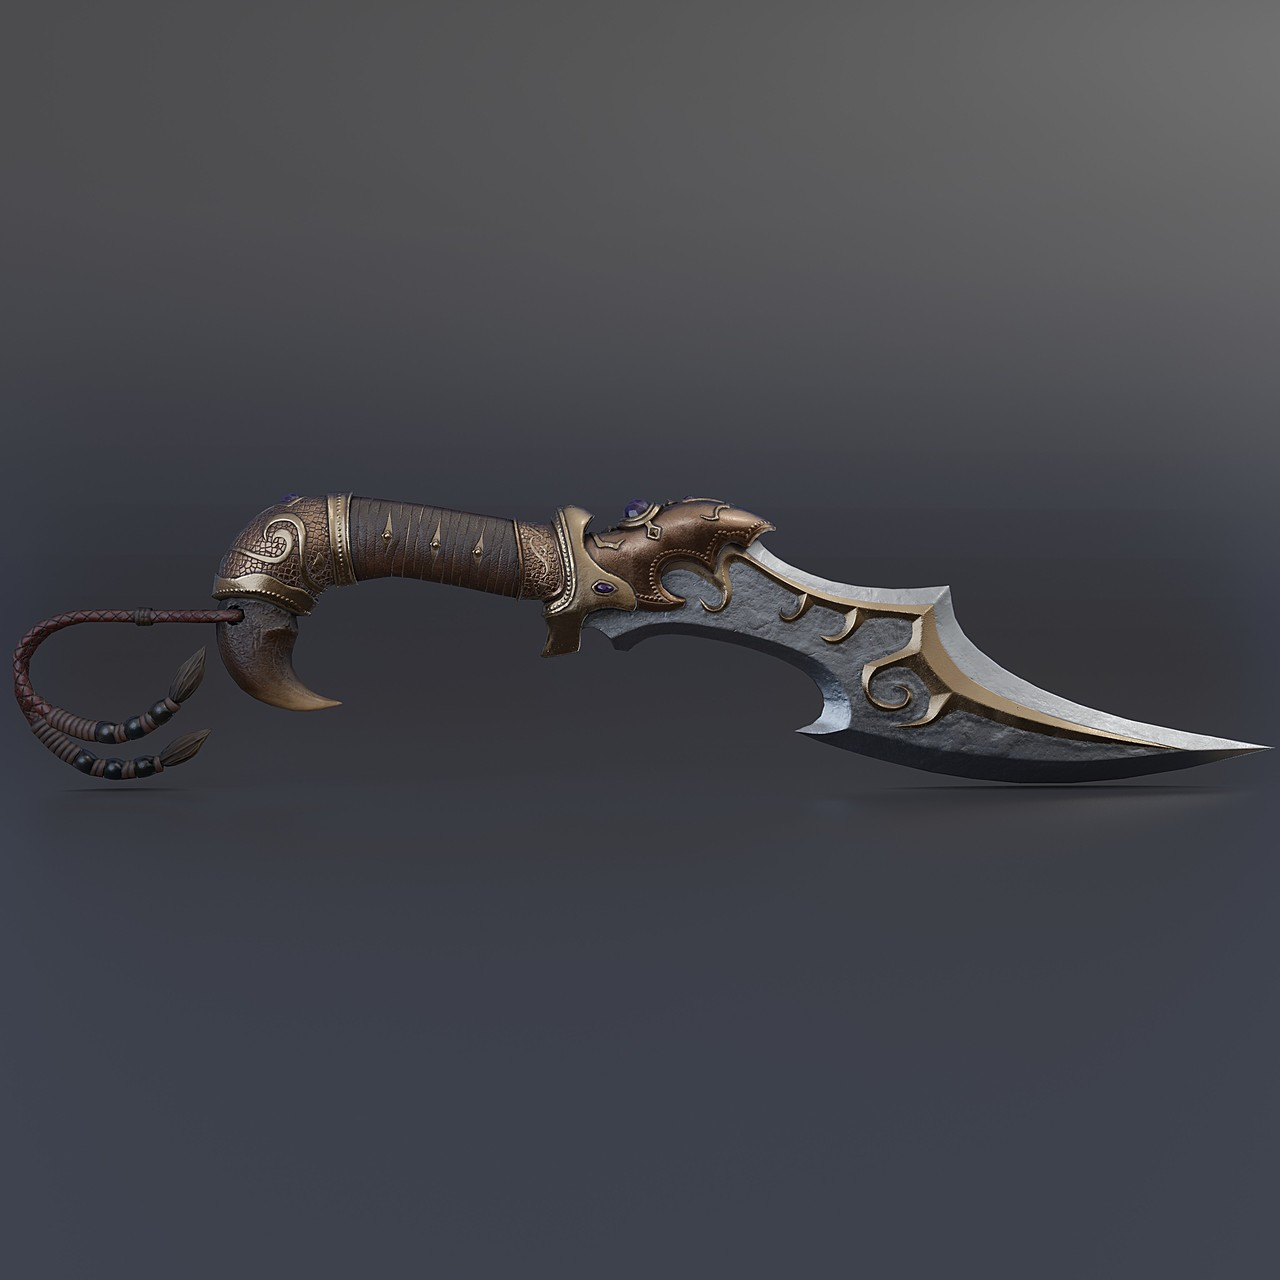 Fantasy Knife for Games